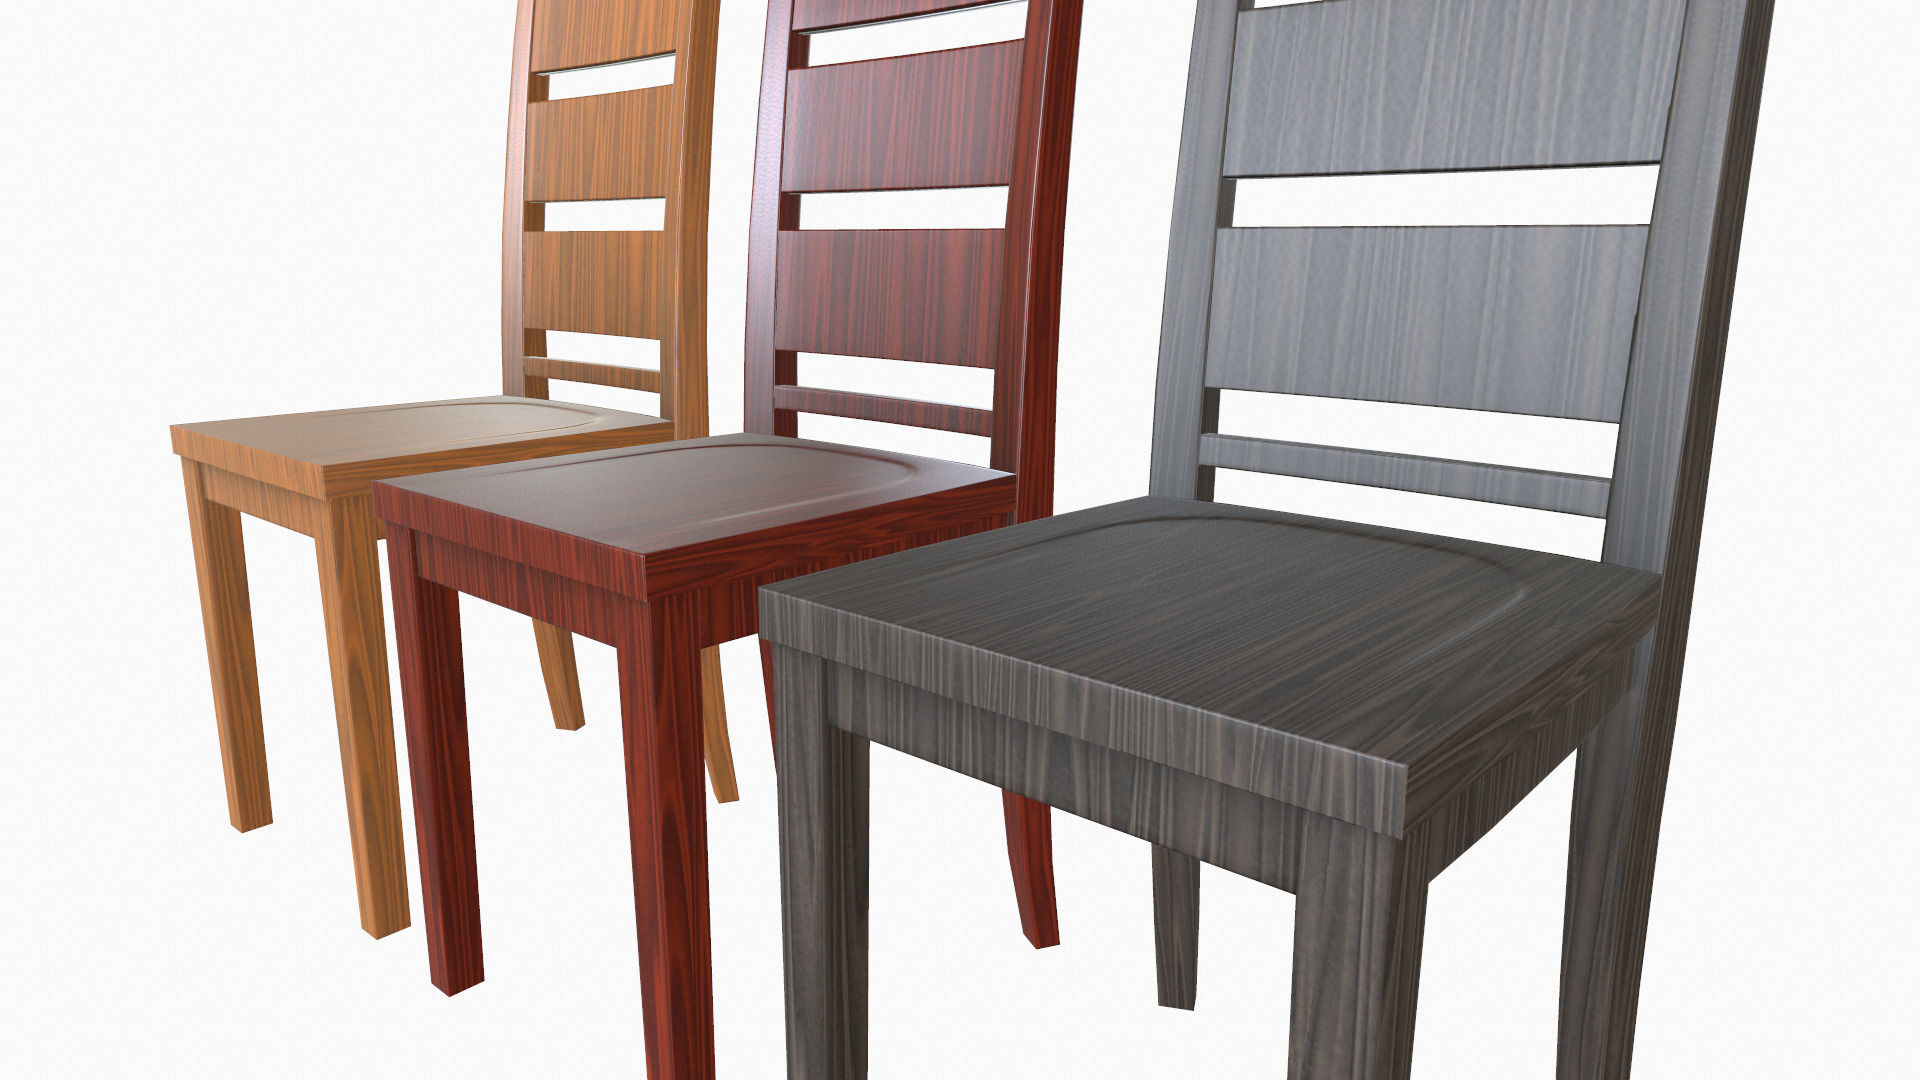 3d model simple wooden dining chair cgtrader